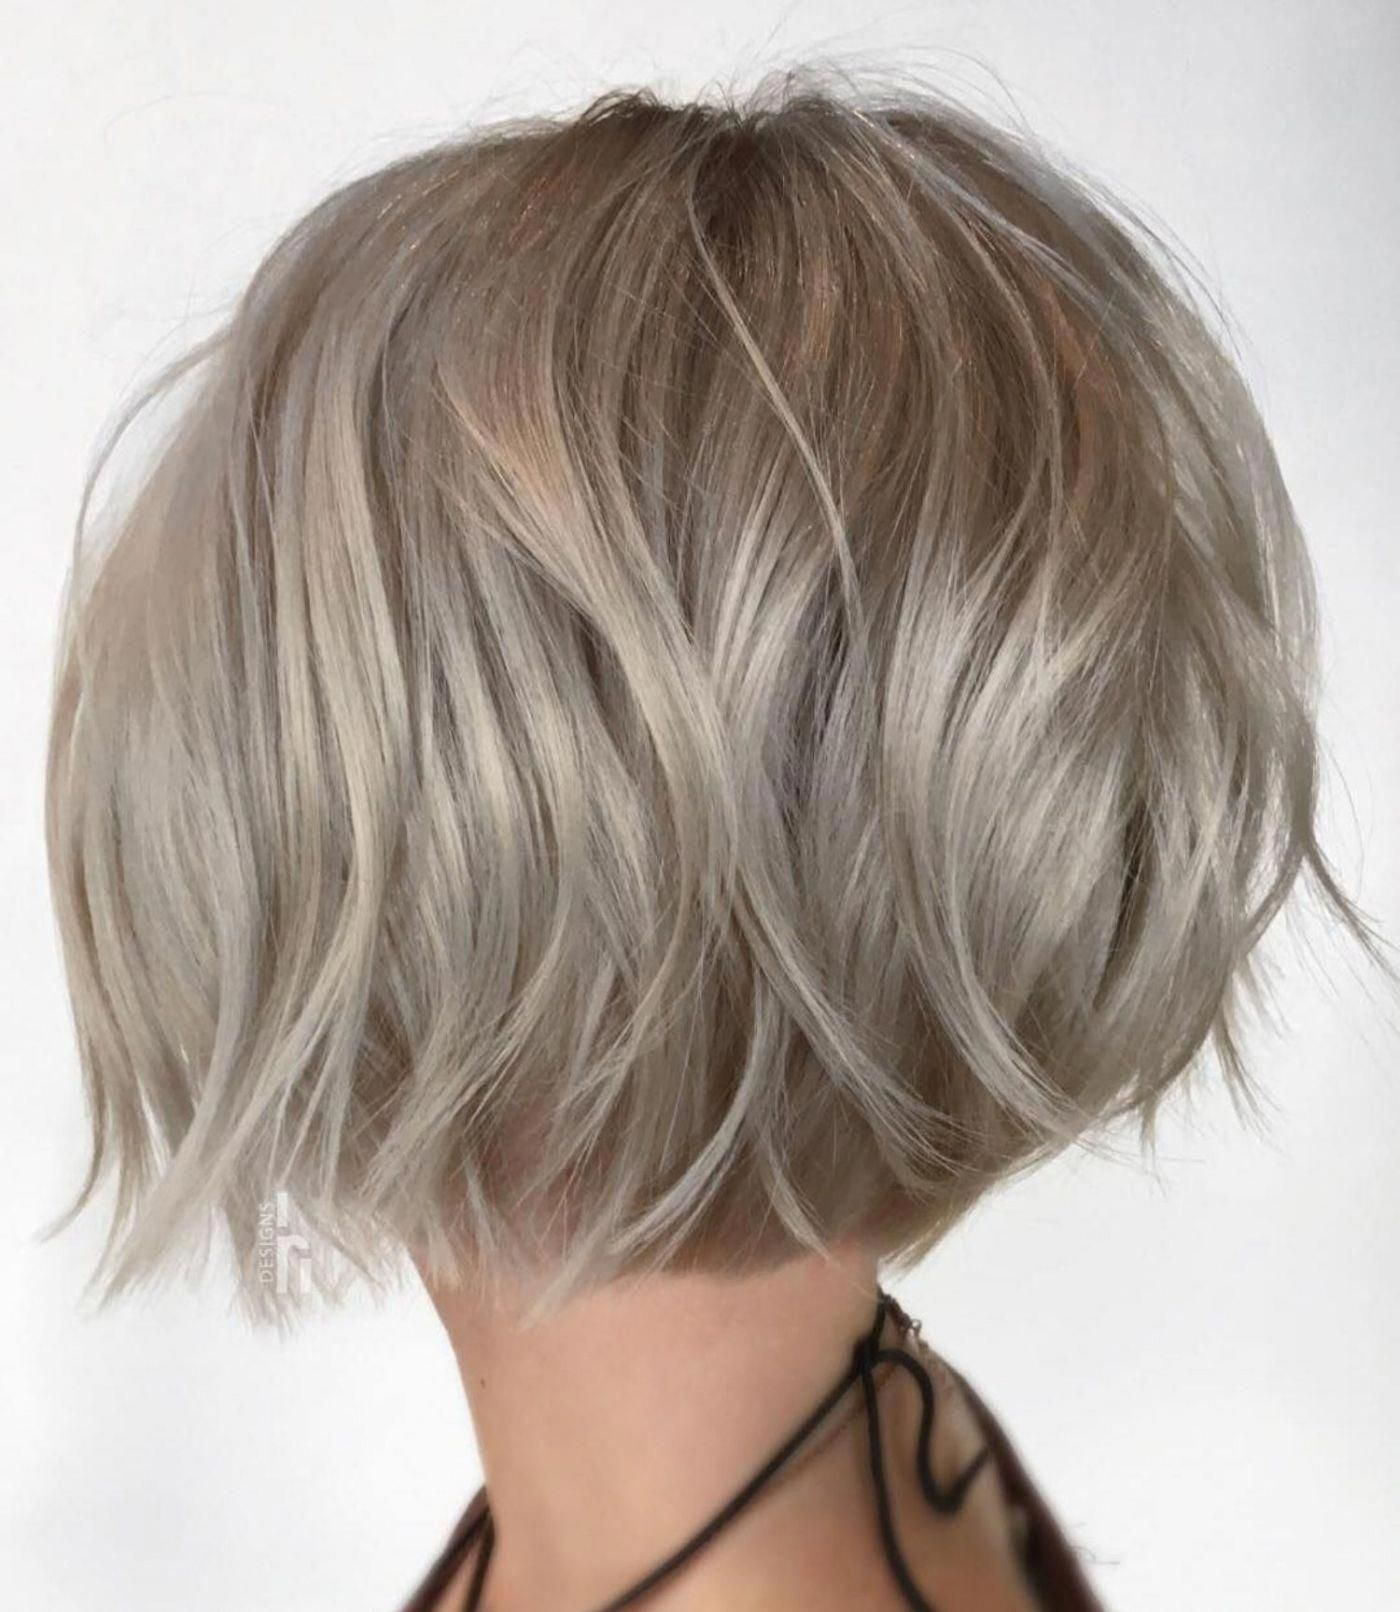 100 Mind Blowing Short Hairstyles For Fine Hair Bobhairstylesforfinehair Hair Styles Short Bob Hairstyles Bob Hairstyles For Fine Hair